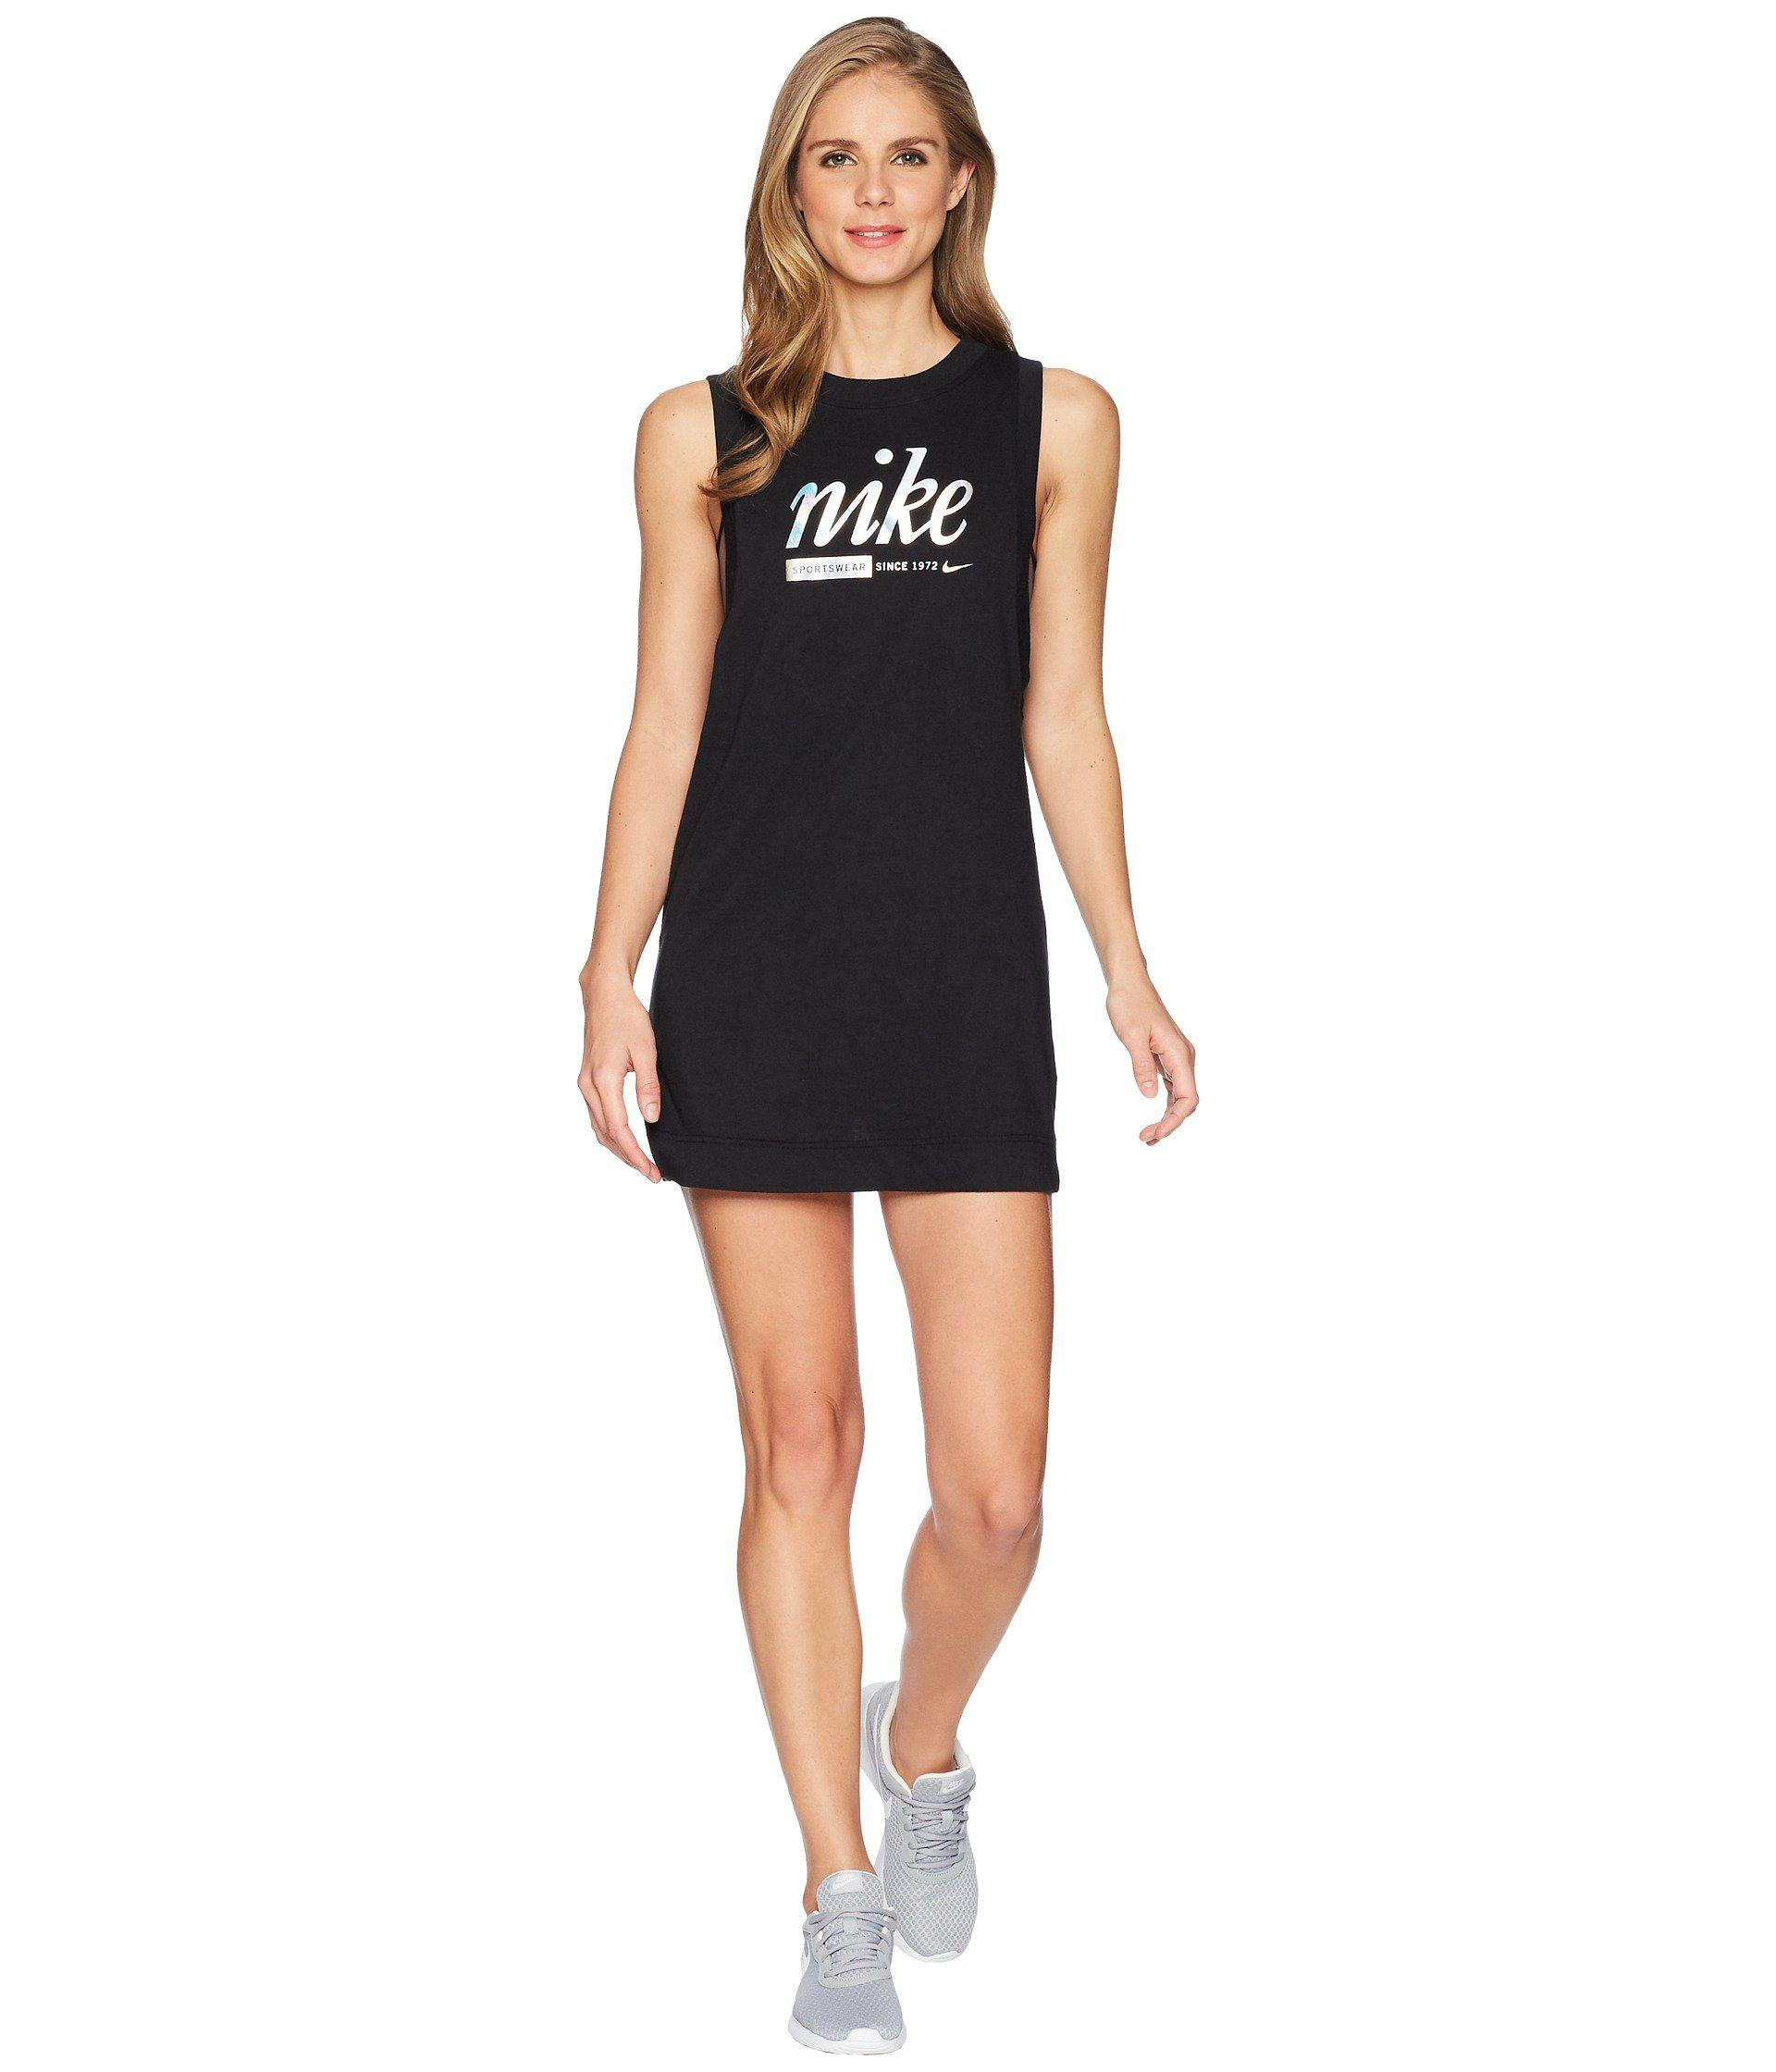 50923b52efa124 Lyst - Nike Sportswear Metallic Dress in Black - Save 29%